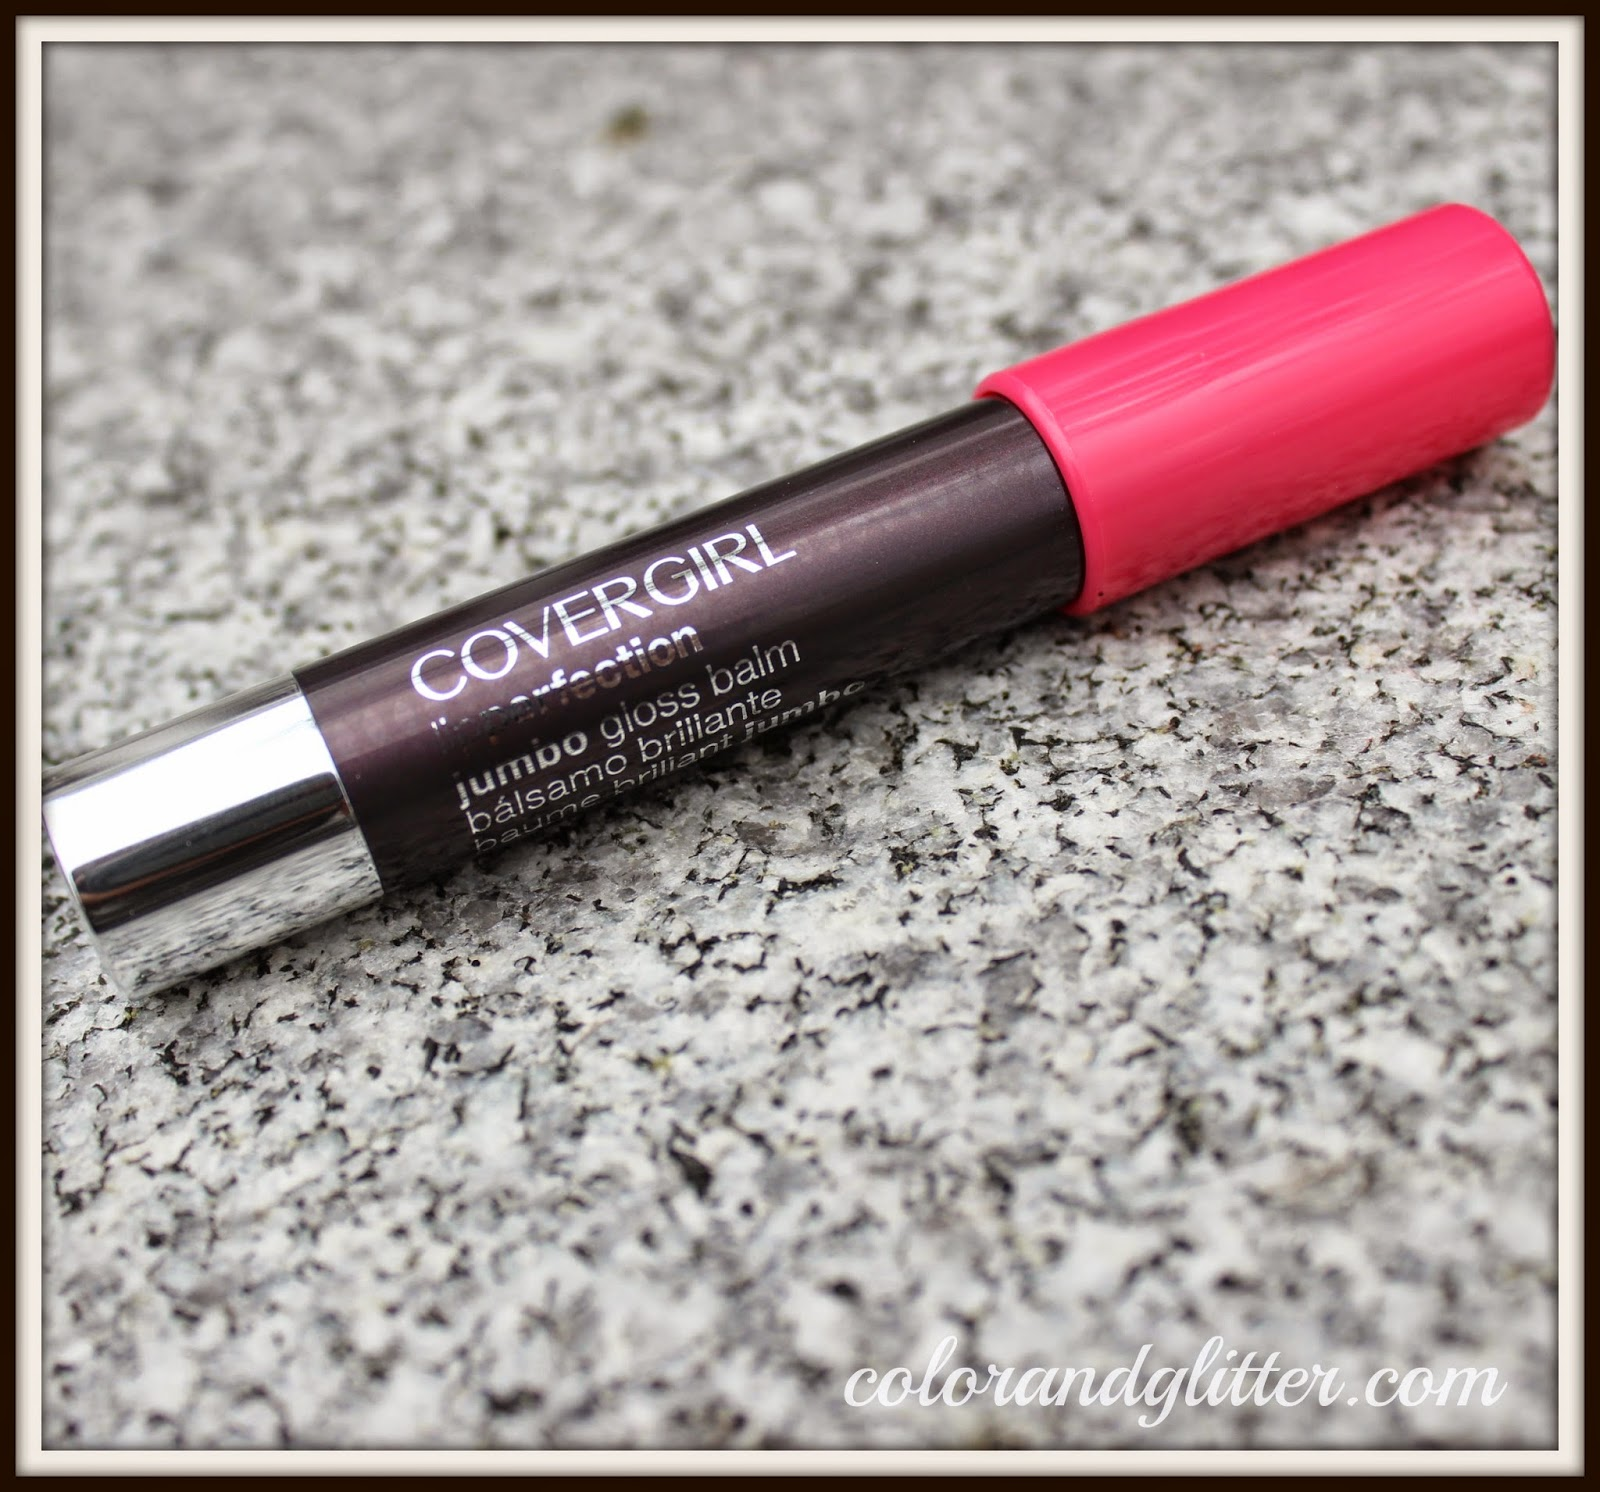 Covergirl Lip Perfection Jumbo Gloss Balm Stain in Watermelon Twist || Review and Swatches